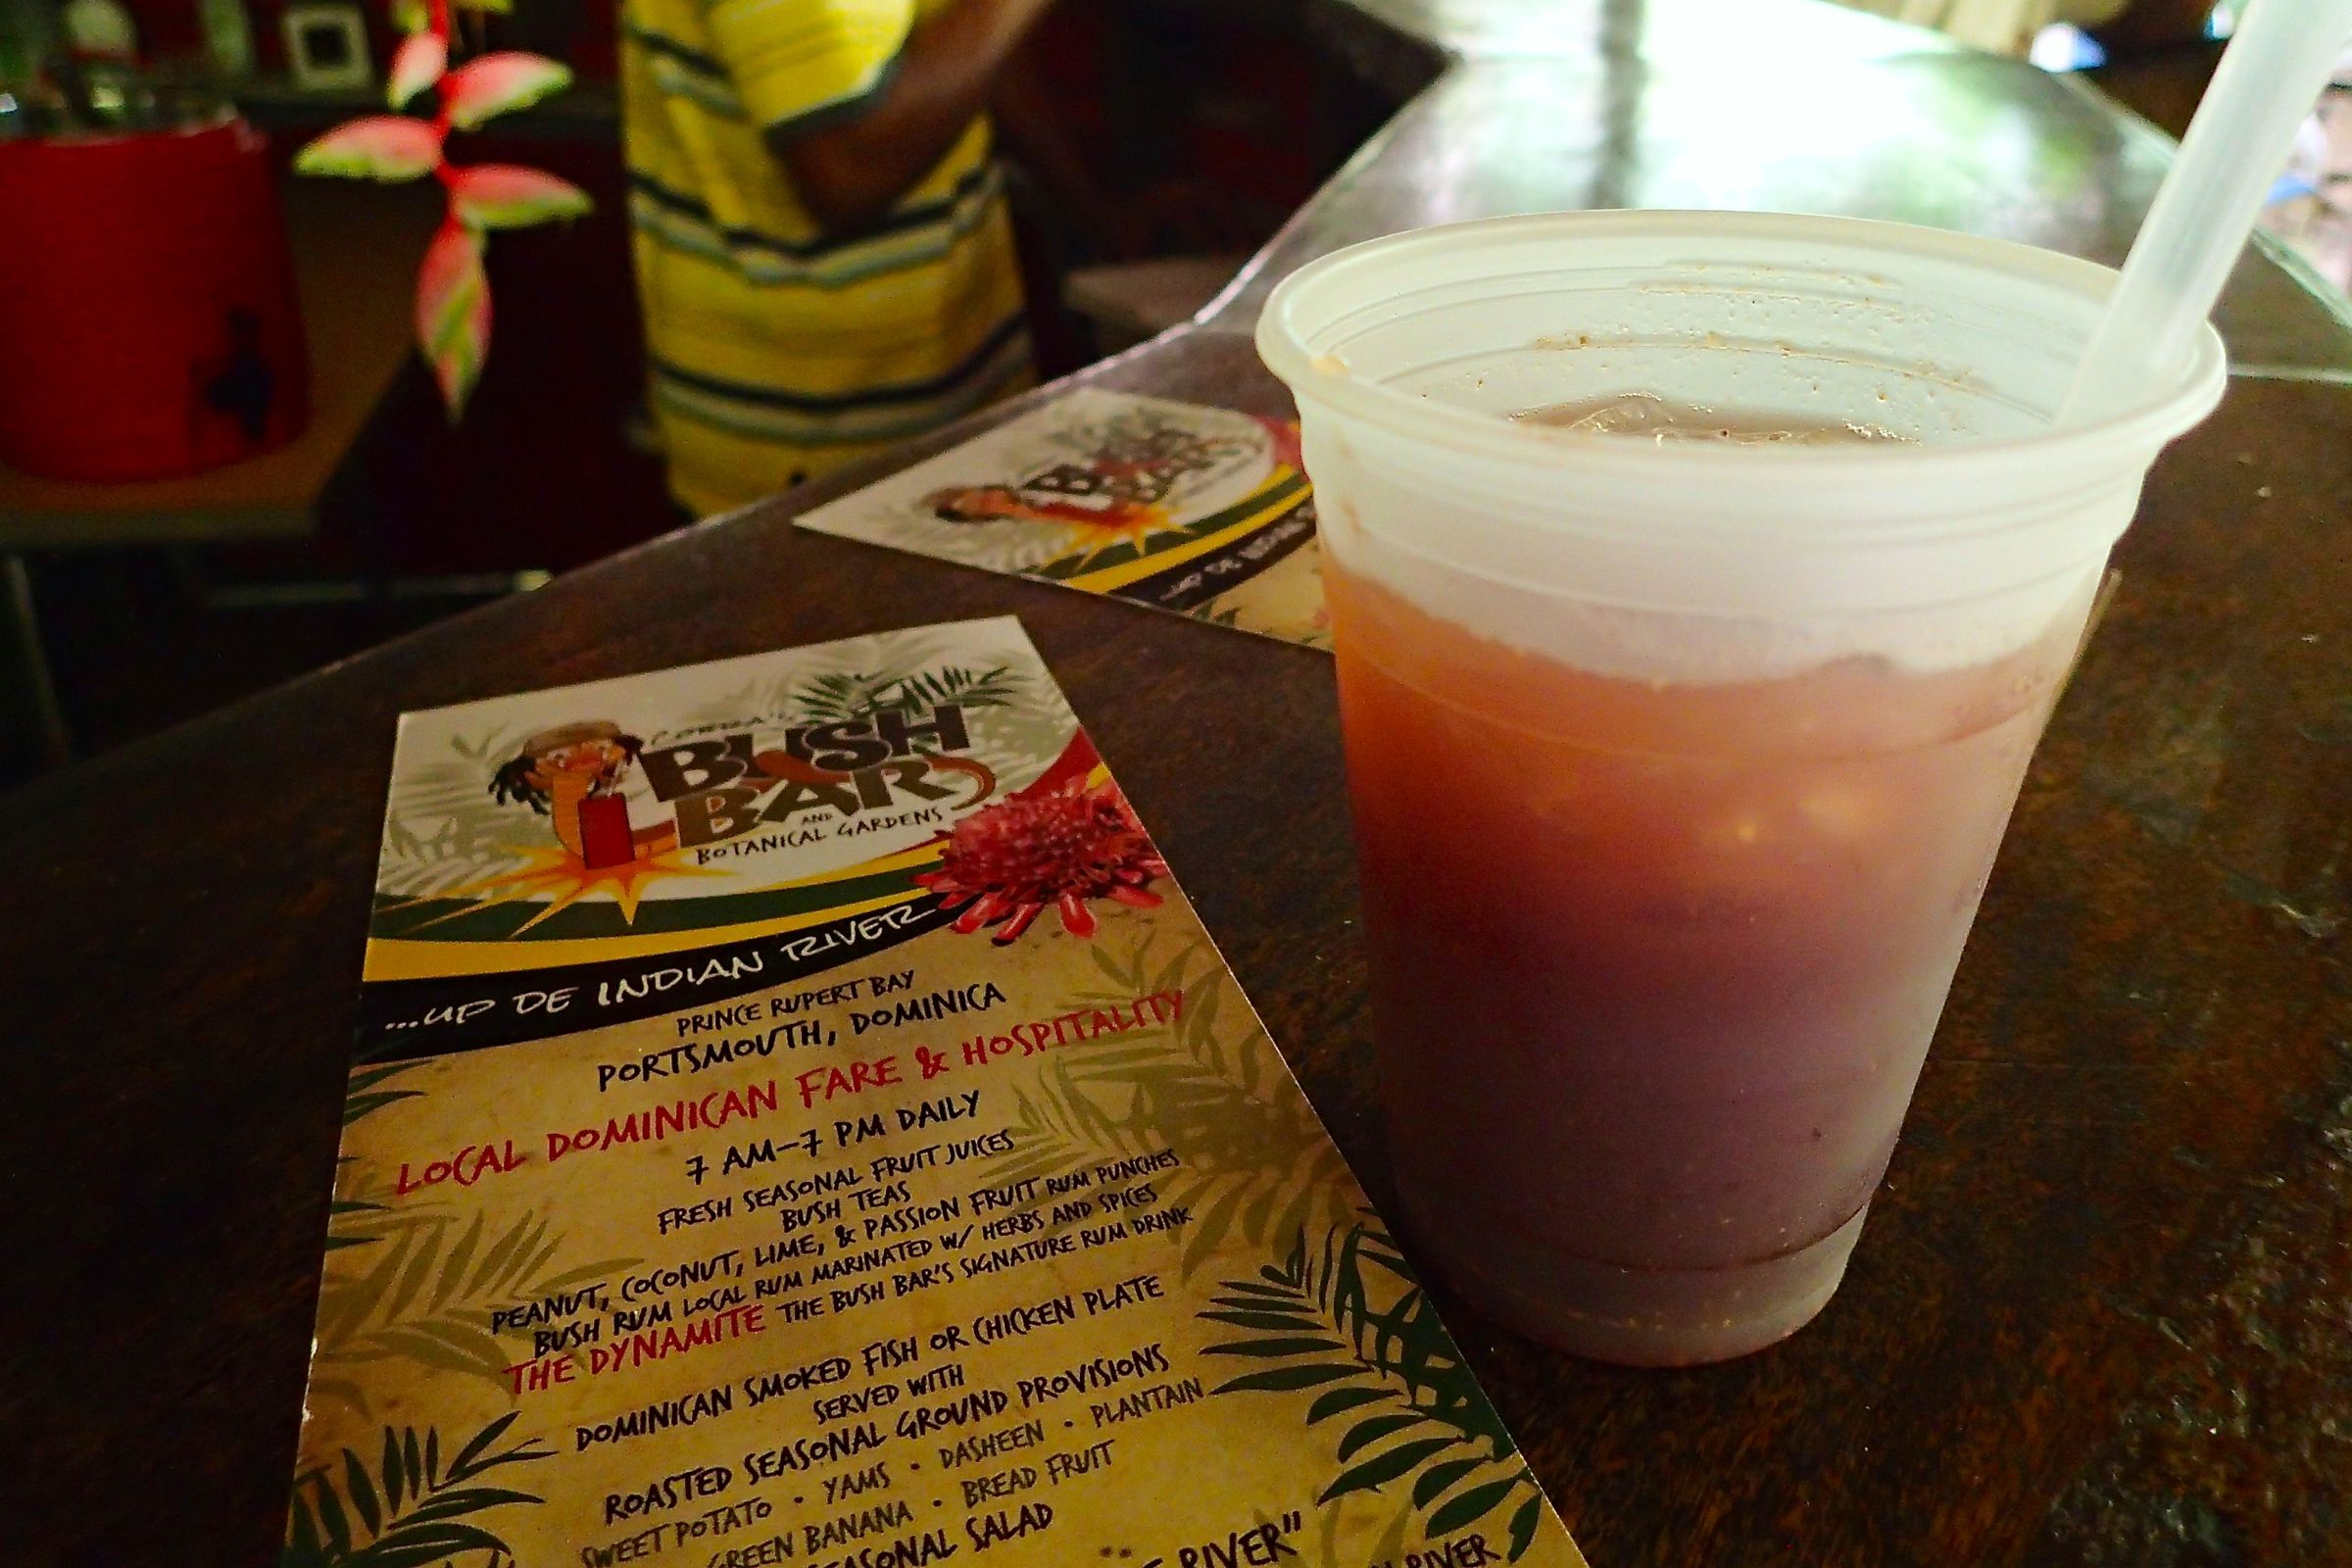 Indian River Dominica Dynamite Rum Cocktail